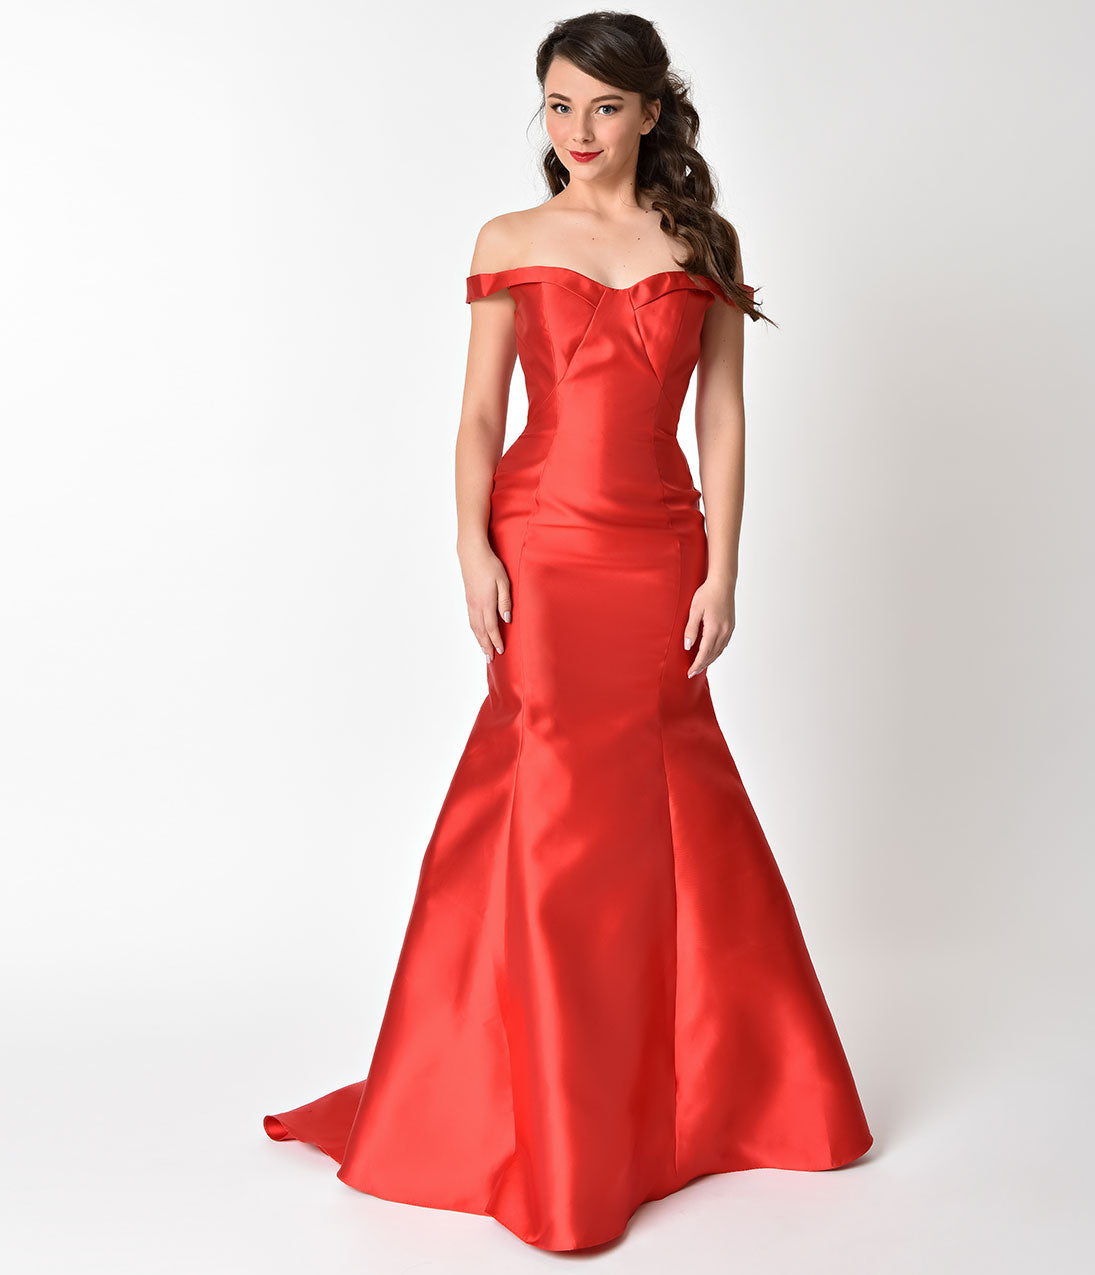 1950s Prom Dresses & Party Dresses Luminous Red Mermaid Style Bateau Prom Gown $168.00 AT vintagedancer.com